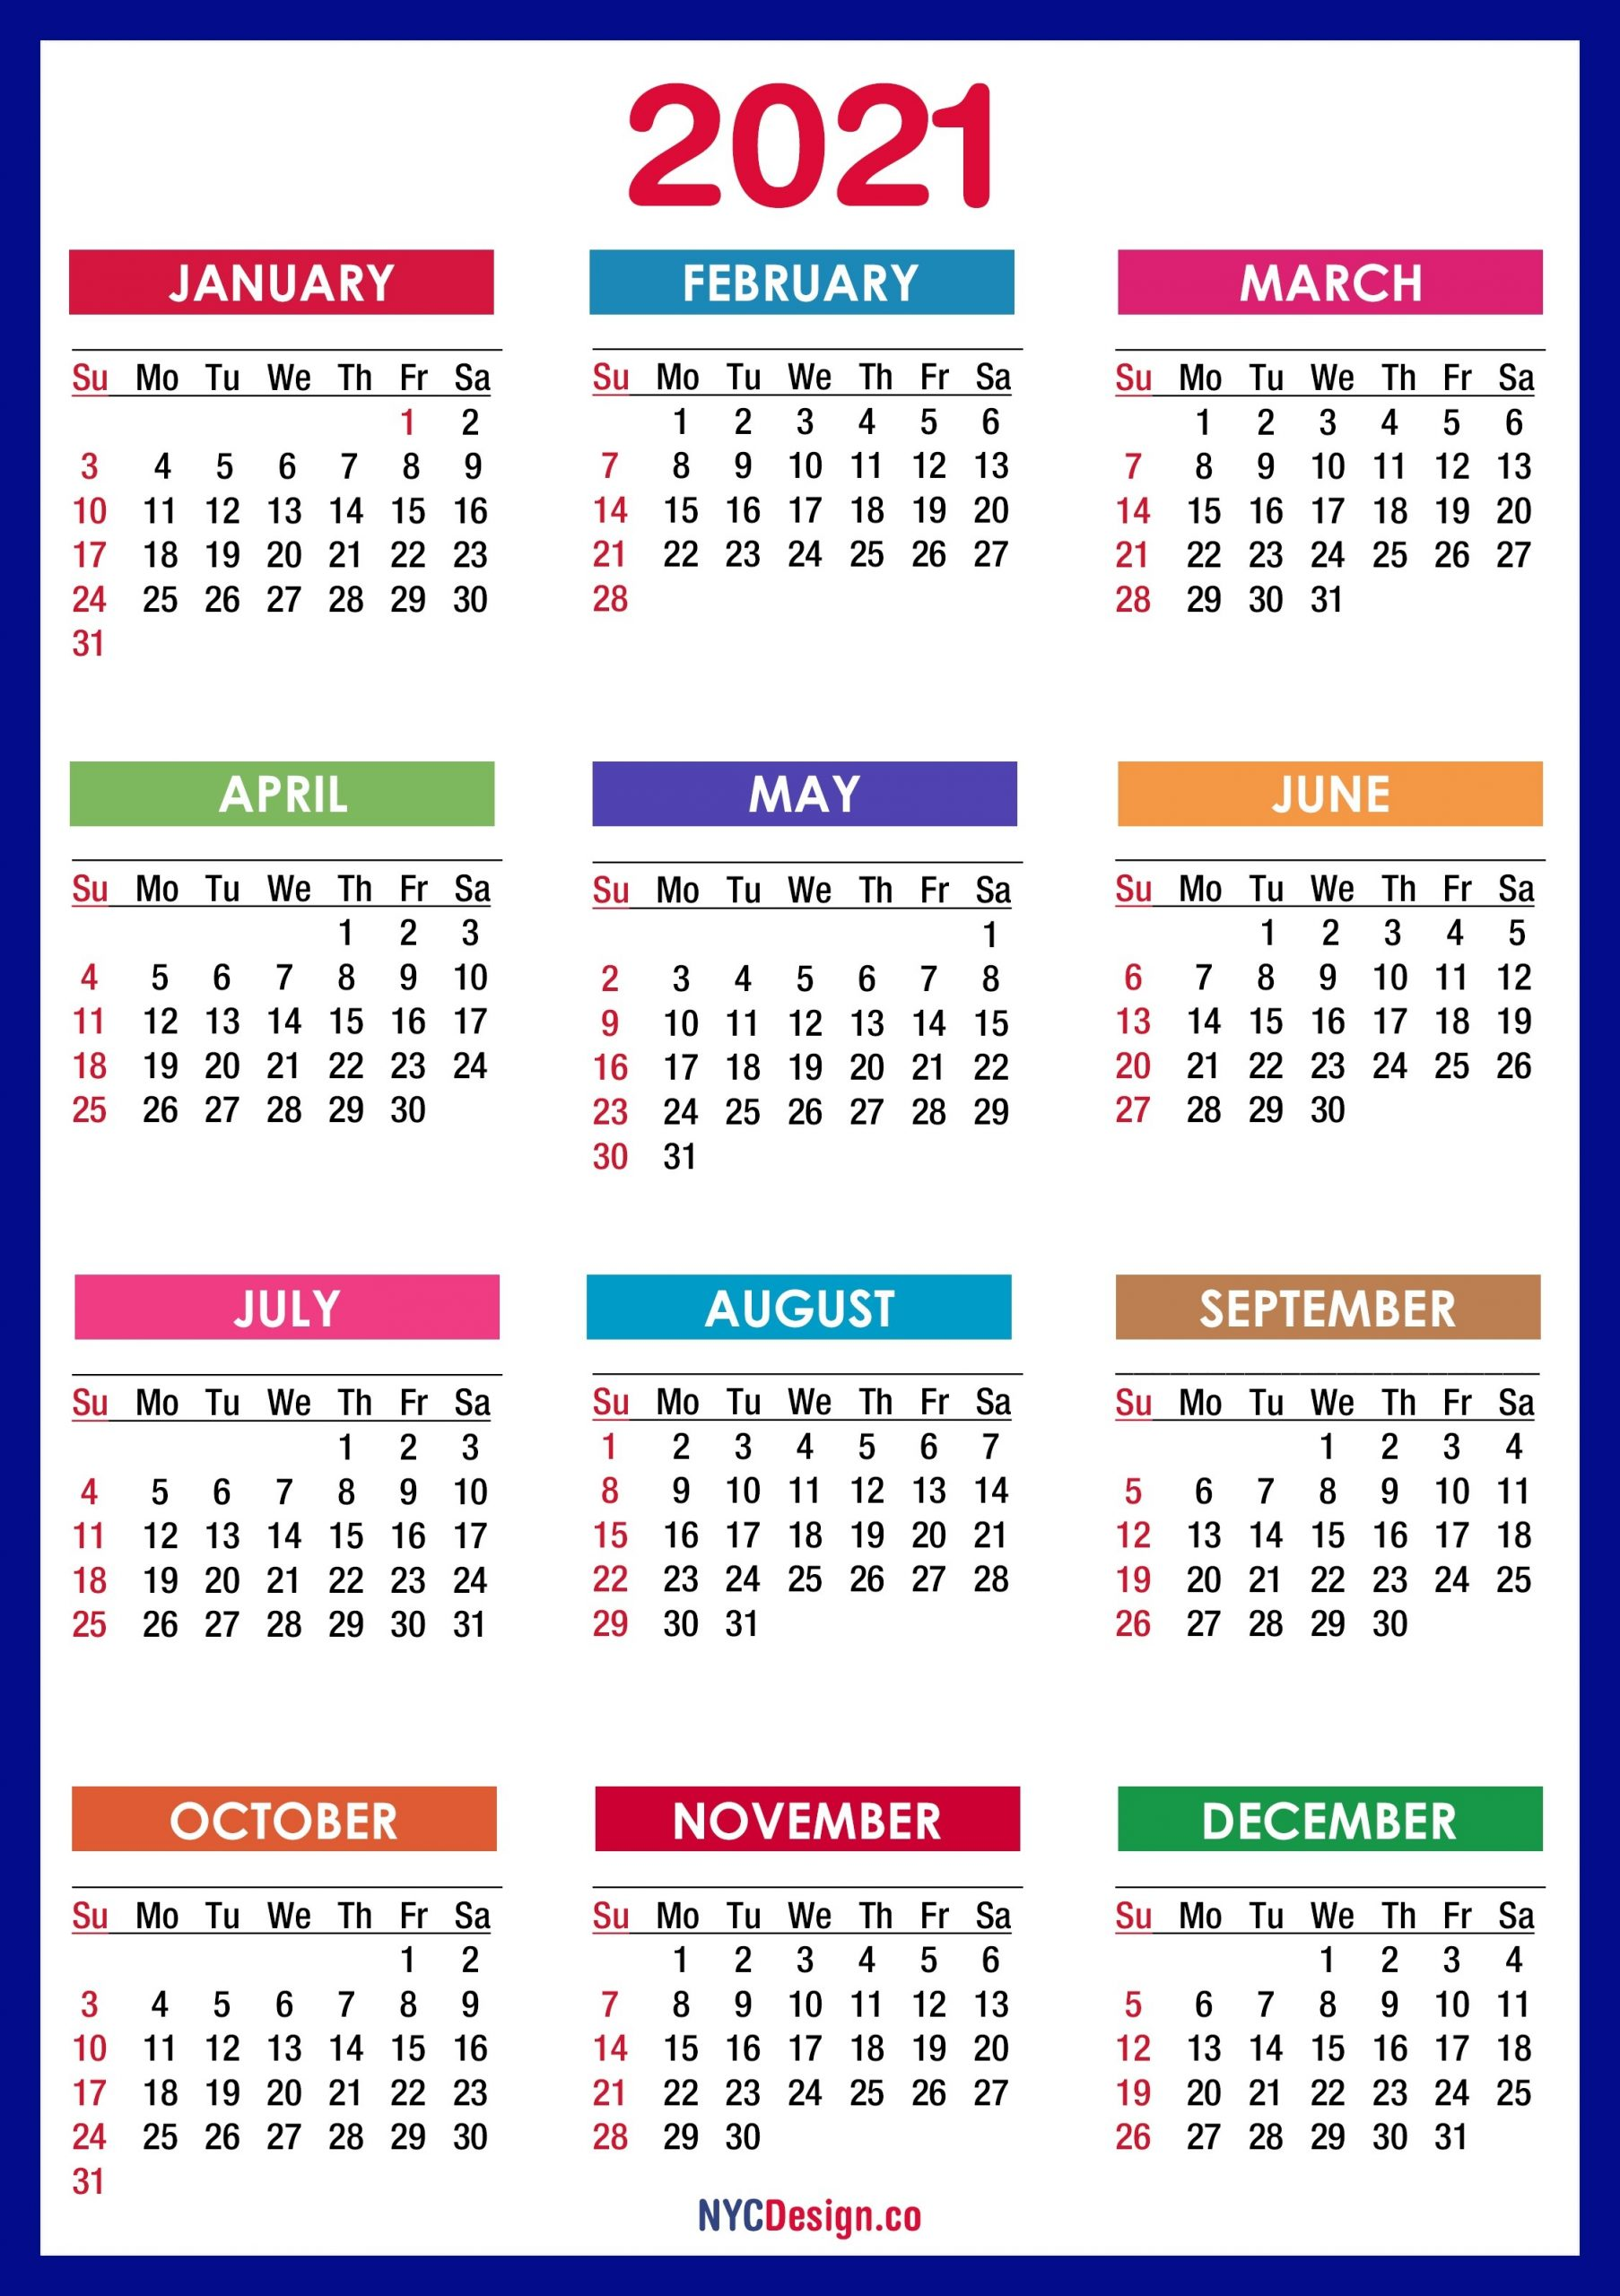 2021 Calendar Printable Free, Pdf, Colorful, Blue, Green – Sunday Start – Nycdesign.co-Sunday To Saturday Monthly Calendar 2021